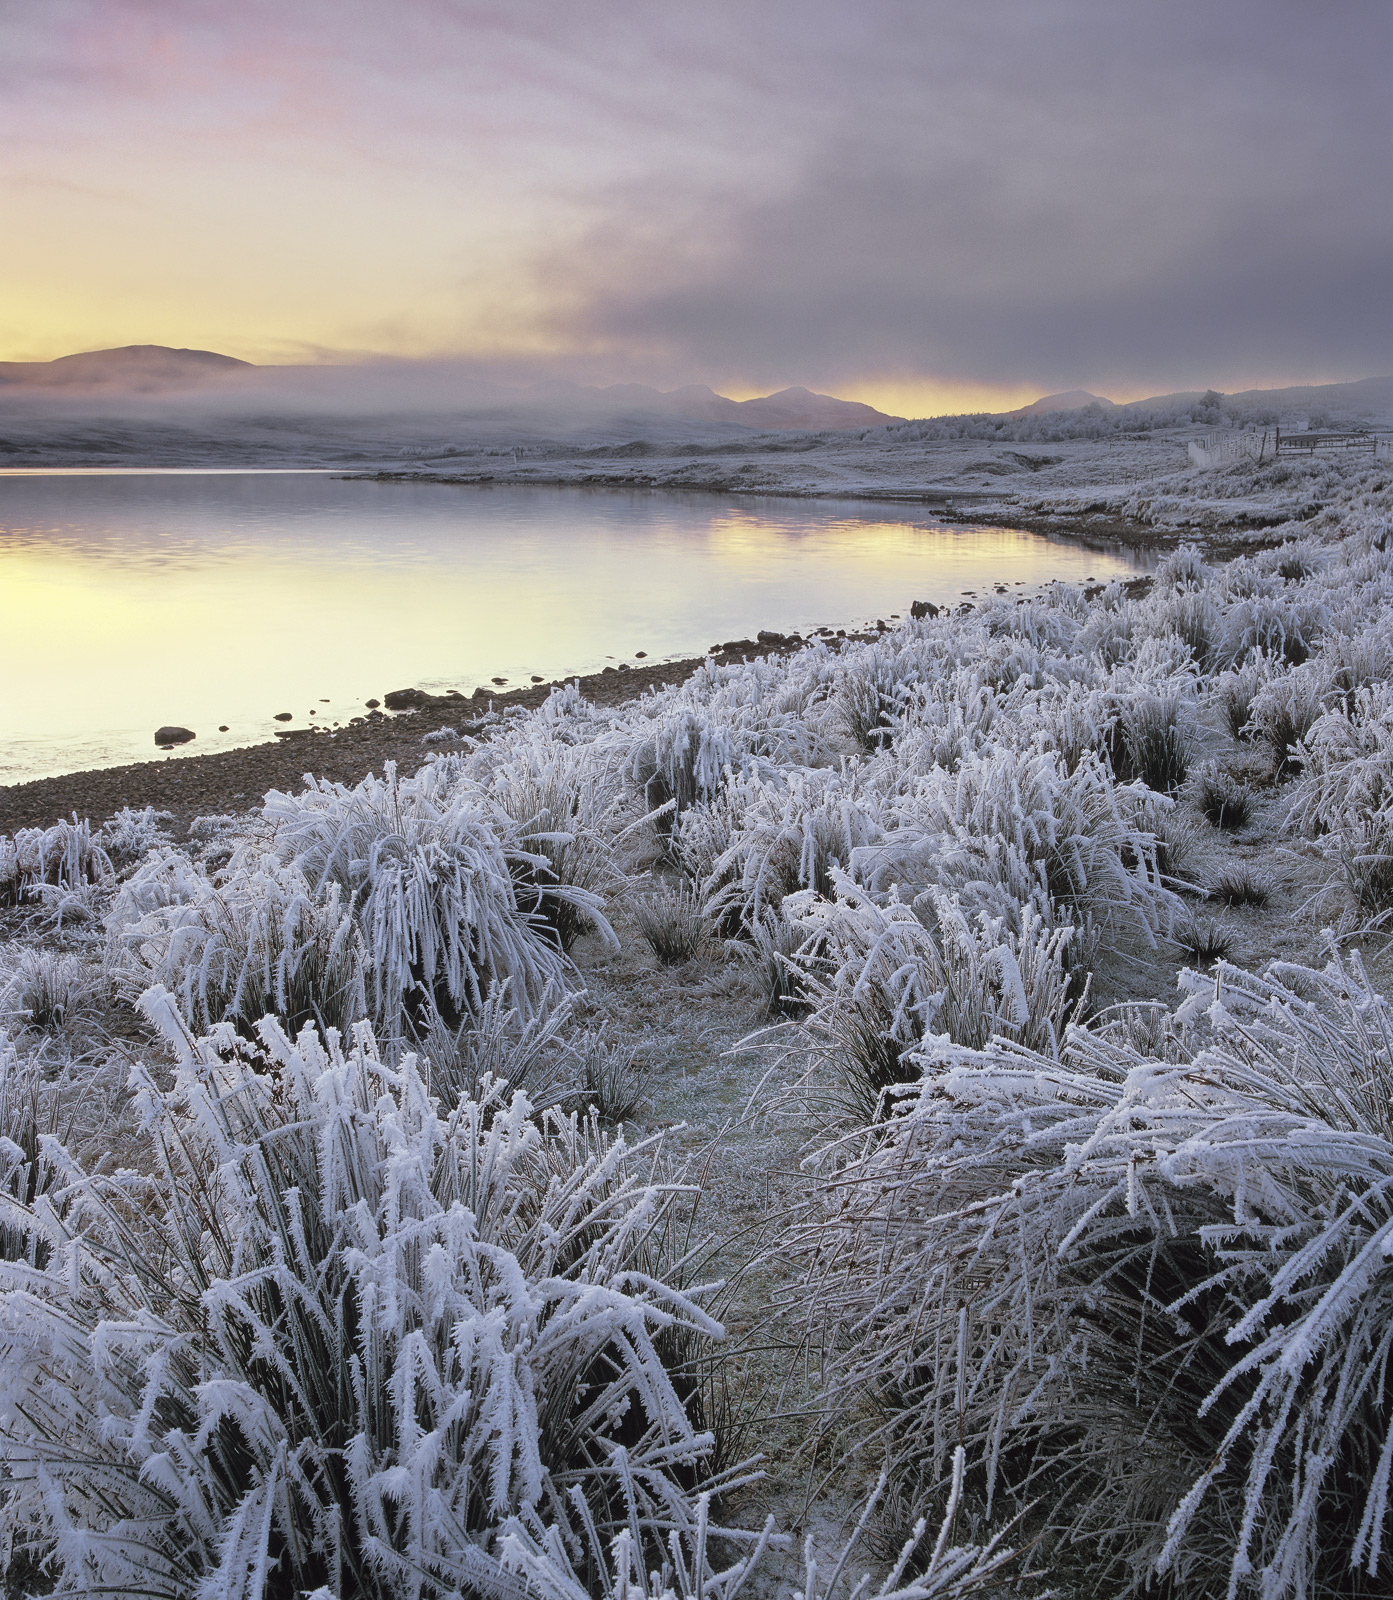 A winter sunset at the edge of Loch A Chroisg, the temperature had stayed well below zero degrees Celcius all day, the long grasses...